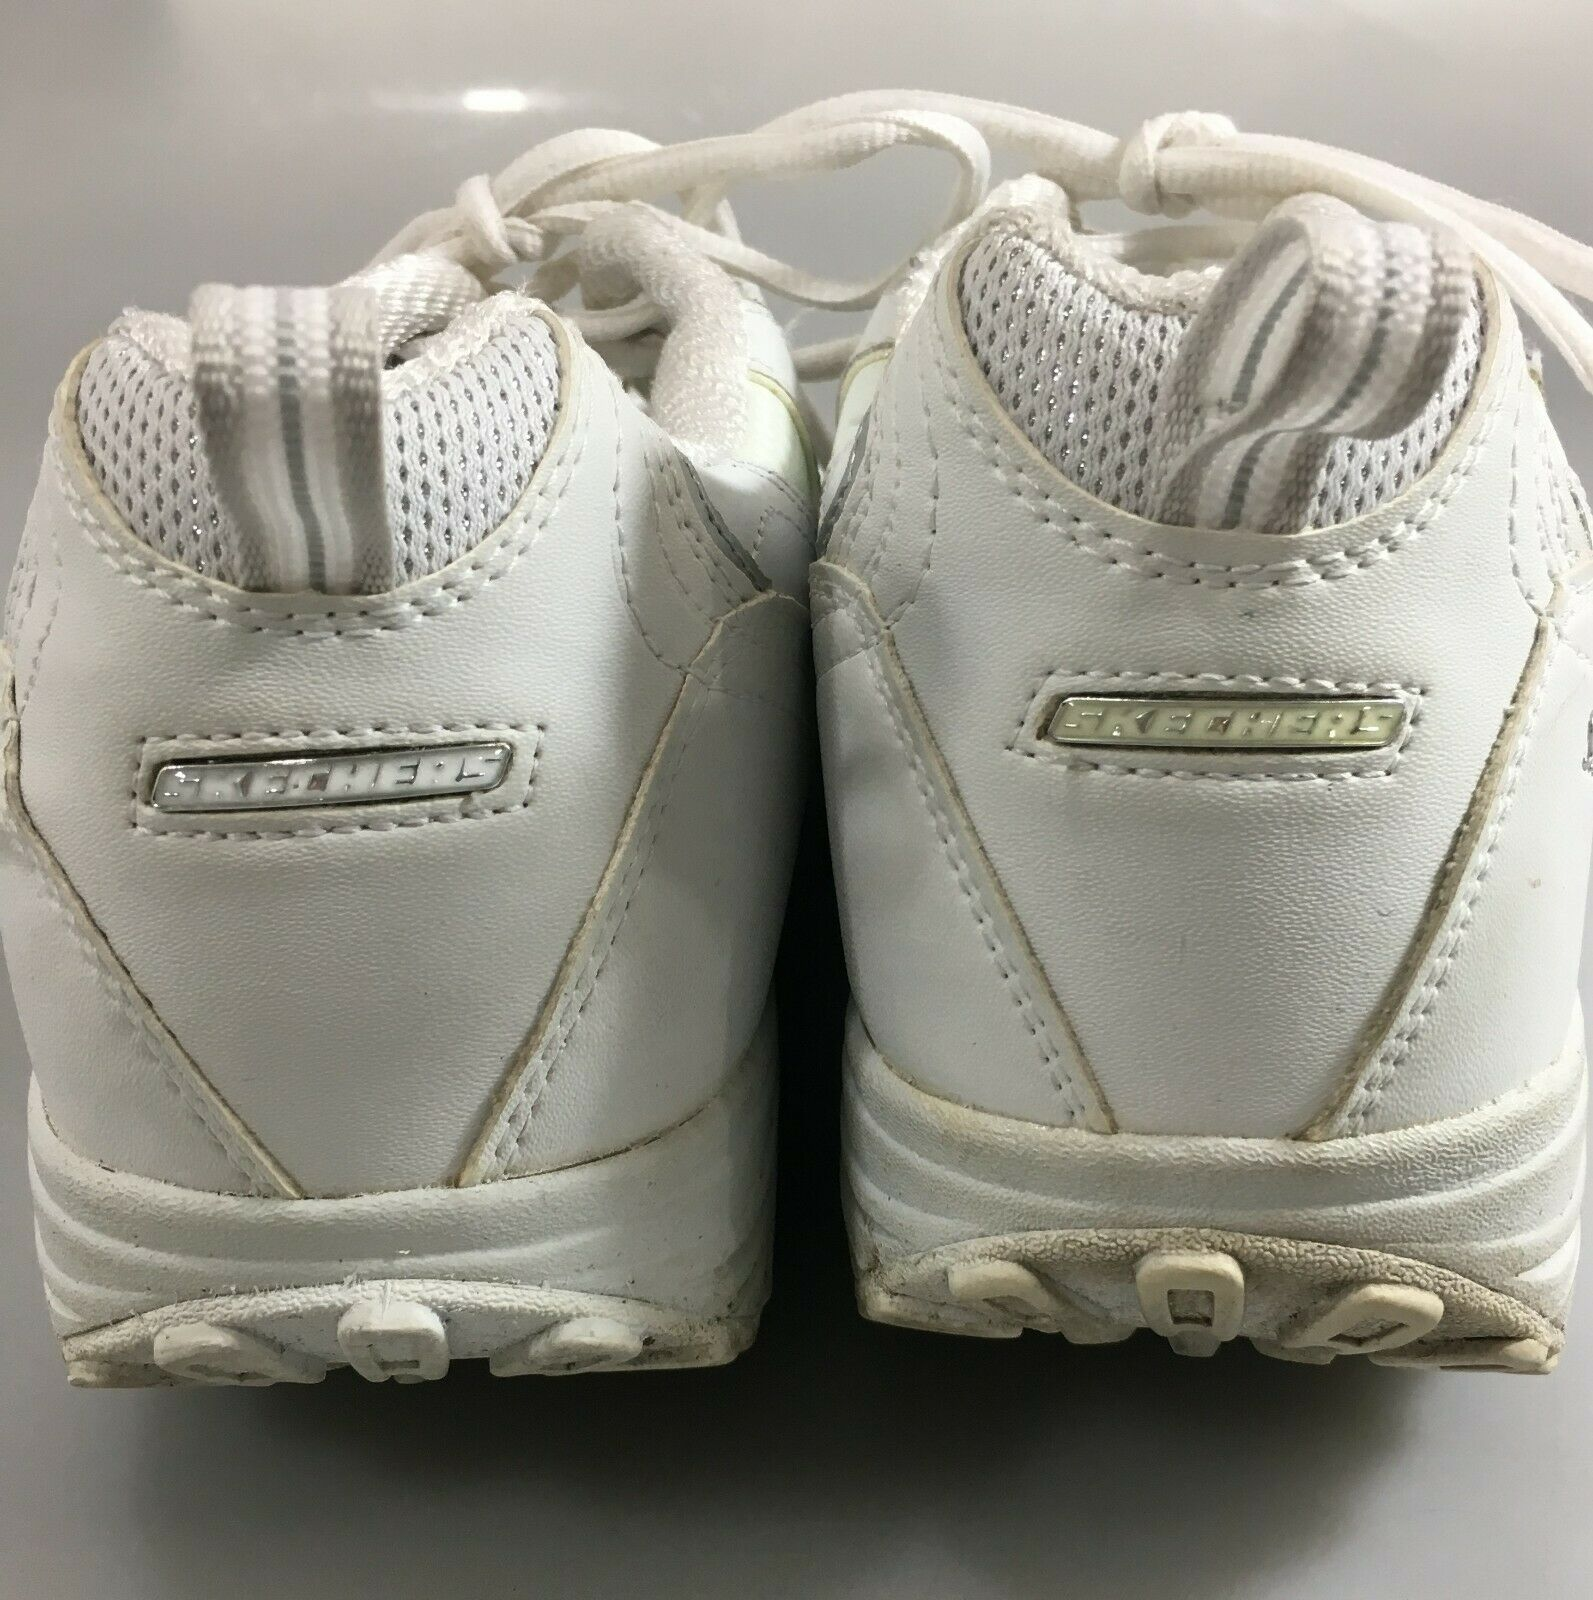 Skechers Womens 9.5 Shape-Ups White Leather Toning Gym Shoes Sneakers Kicks image 2